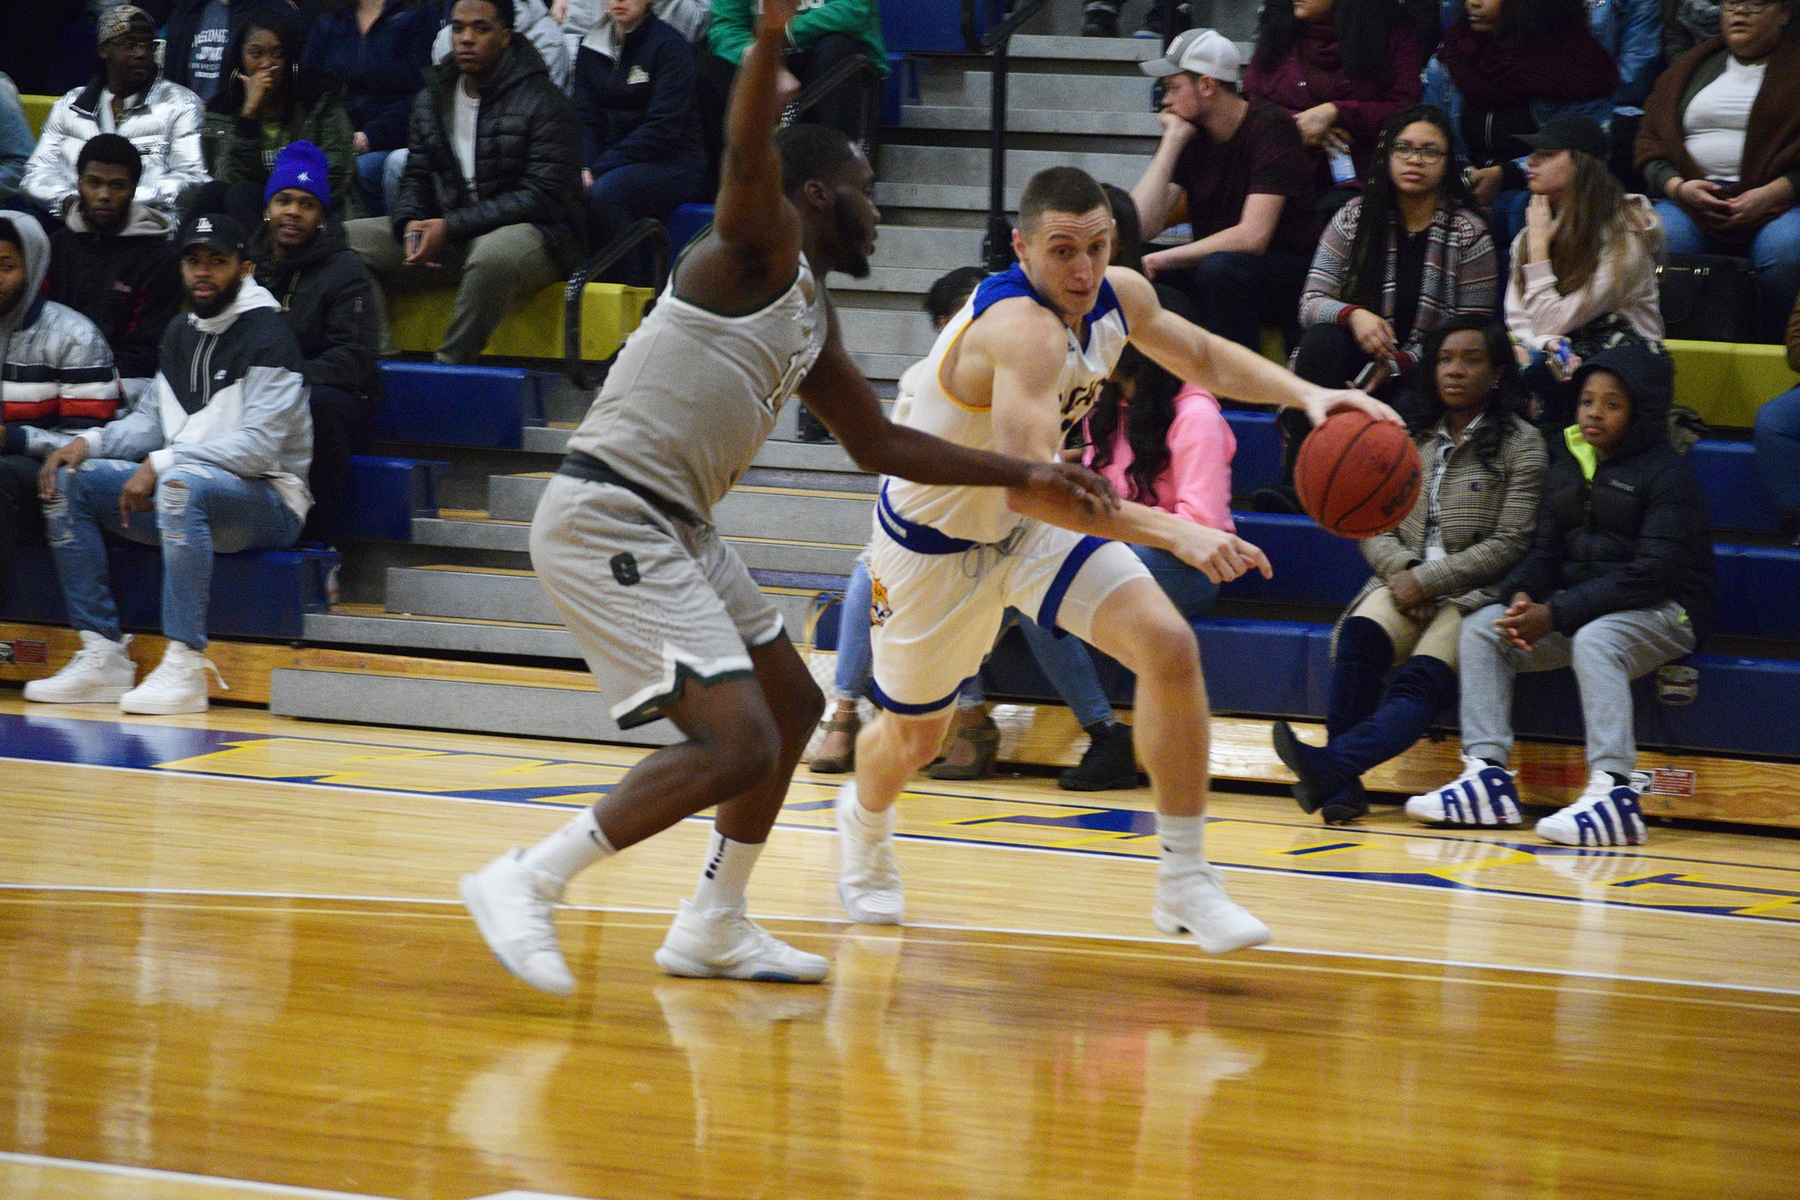 Men's Basketball Takes Down Babson 78-68